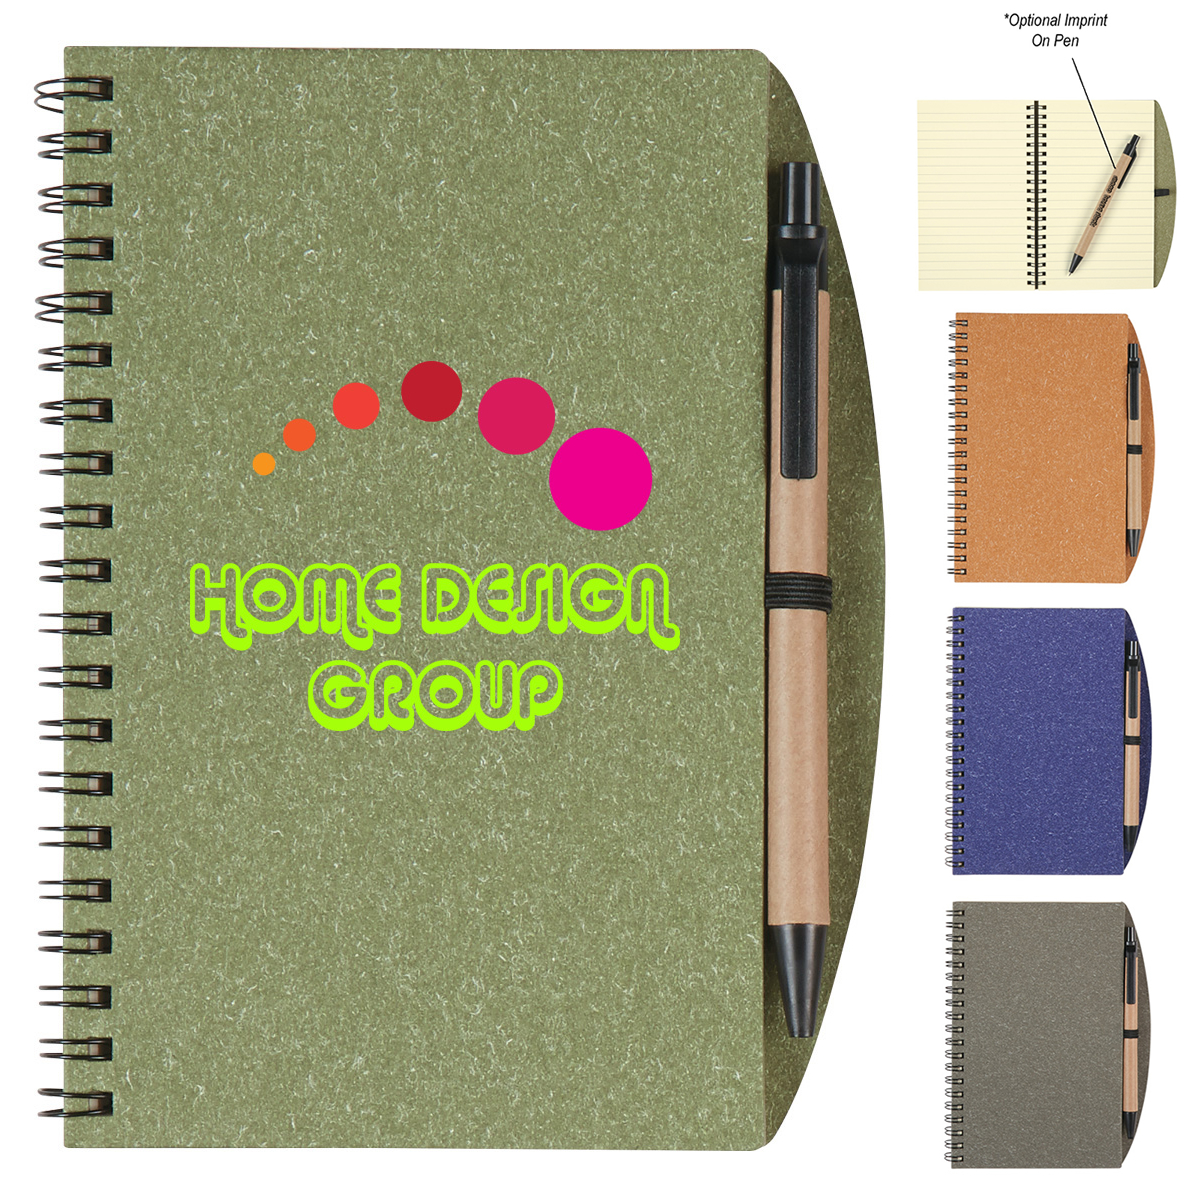 customized 5 x 7 eco inspired spiral notebook pen promotional